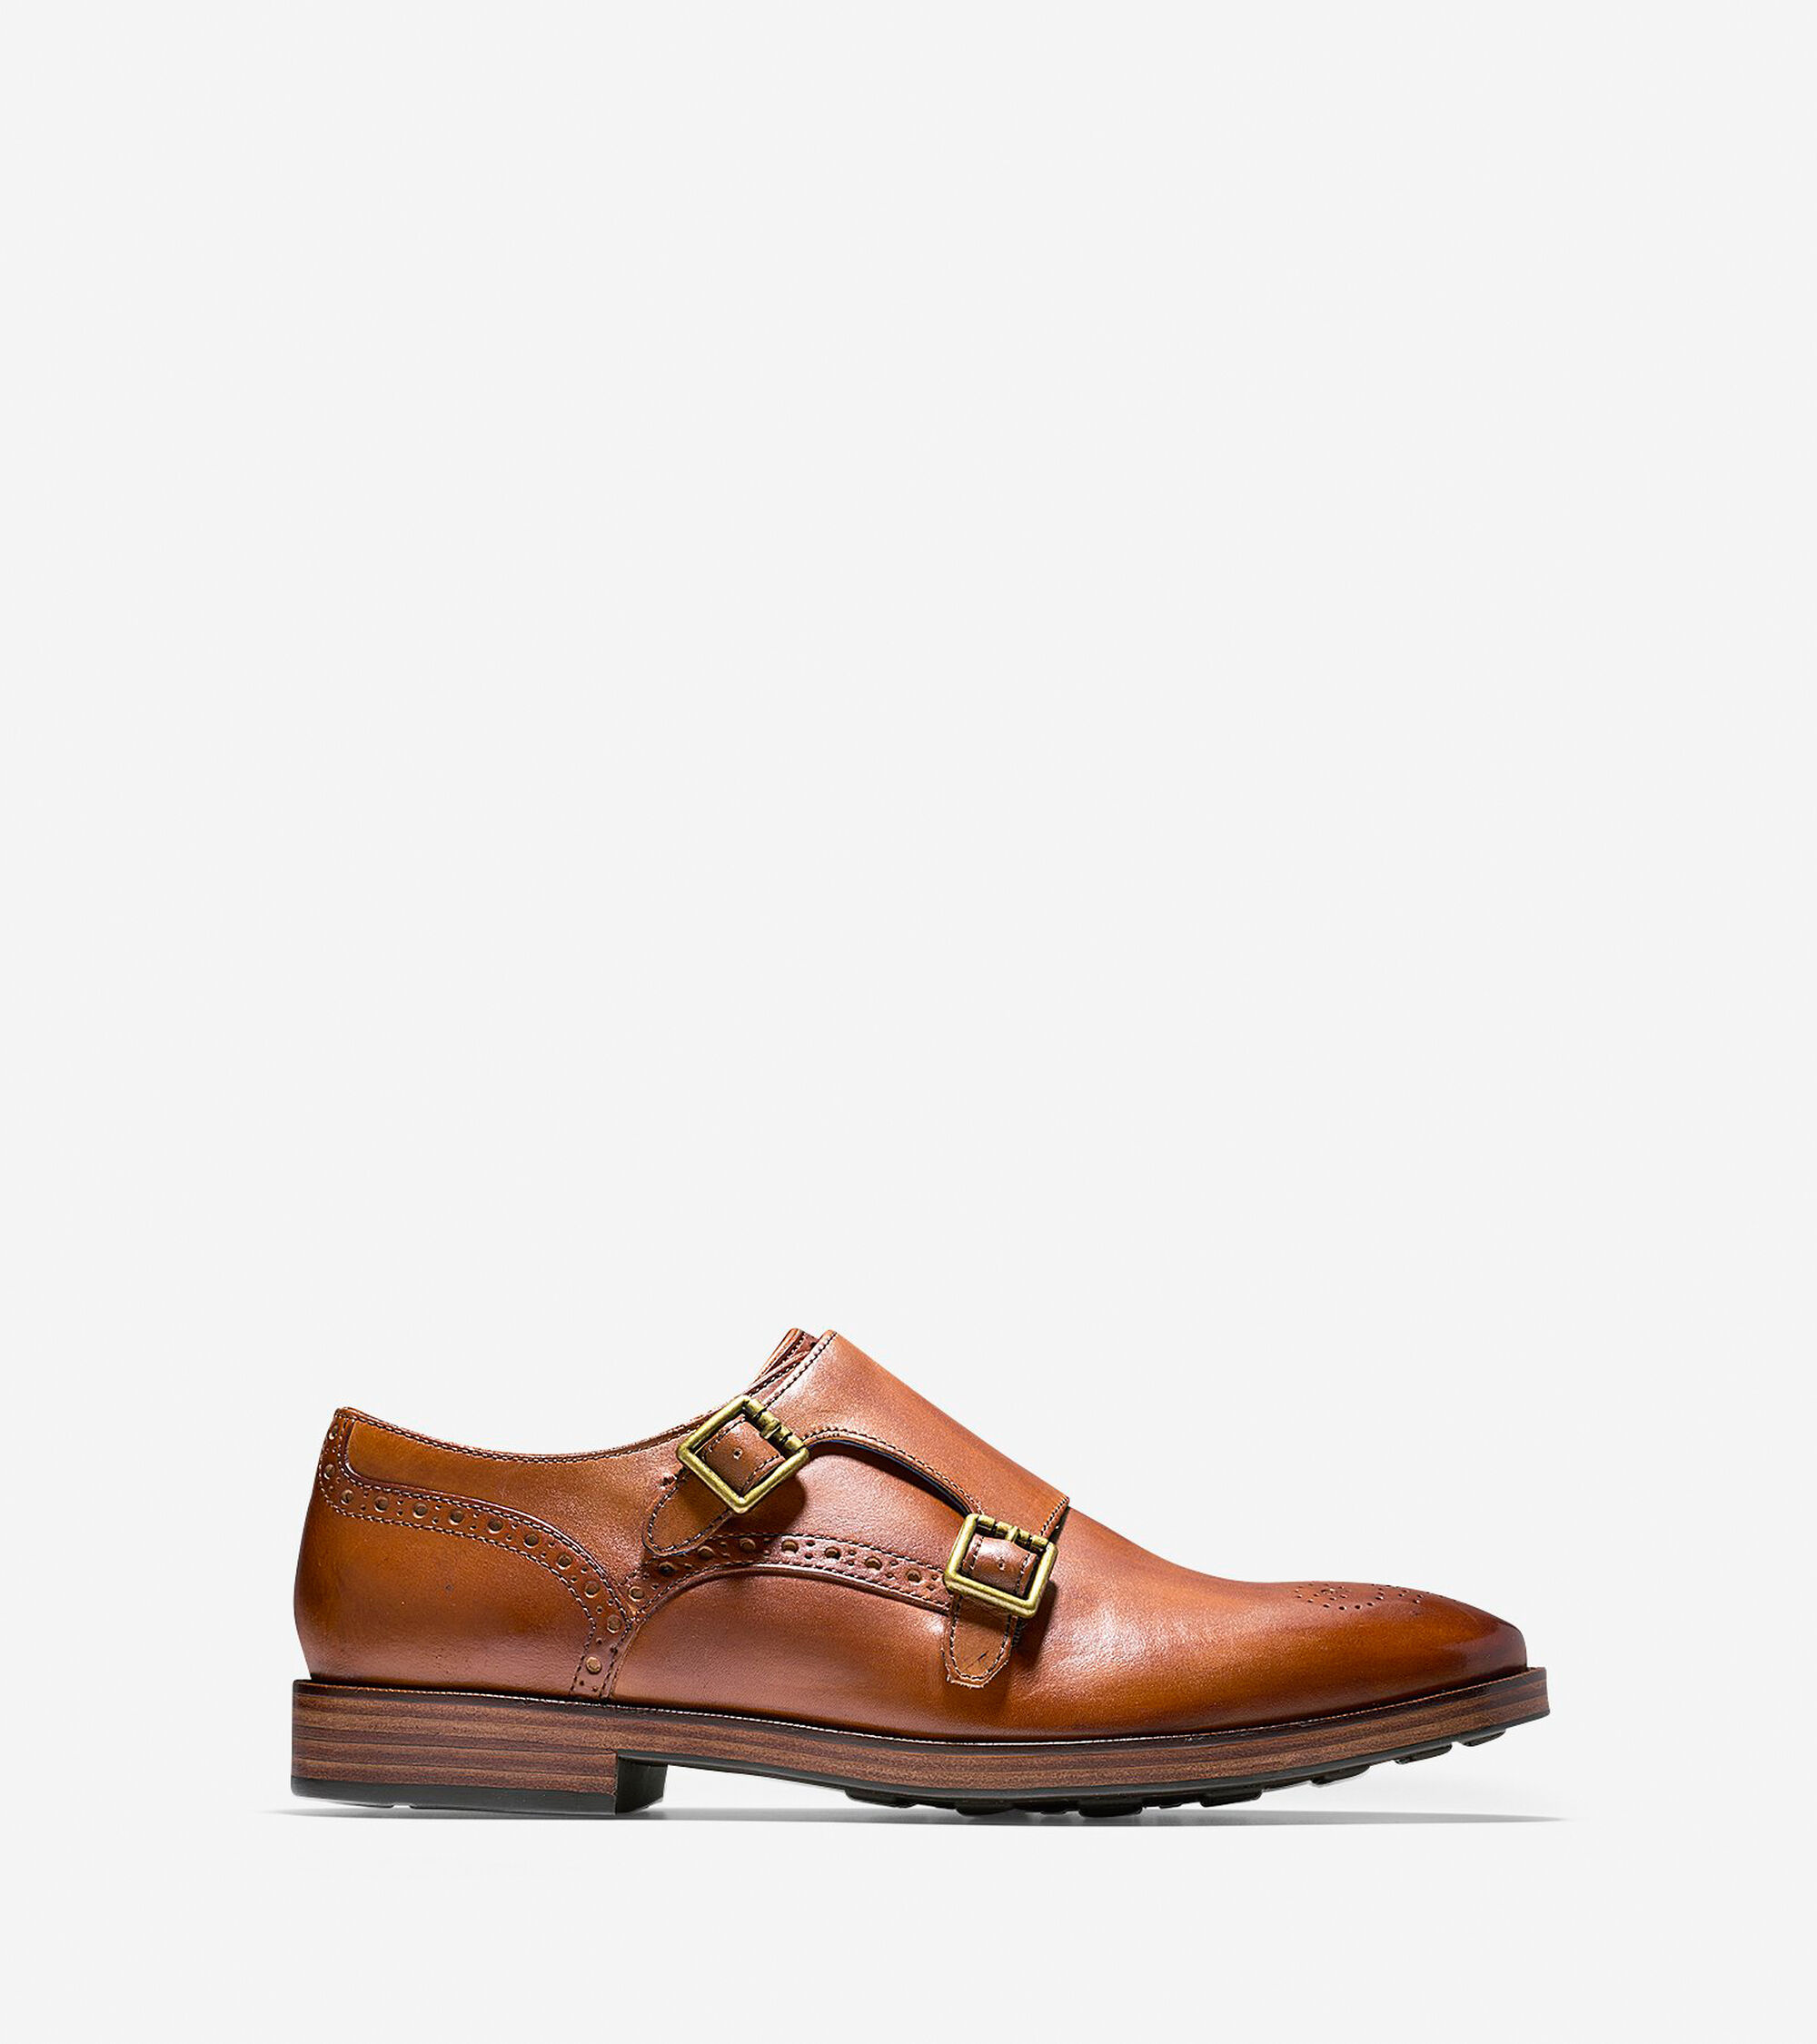 Cole Haan Men's Shoes and Sneakers at MenStyle USA